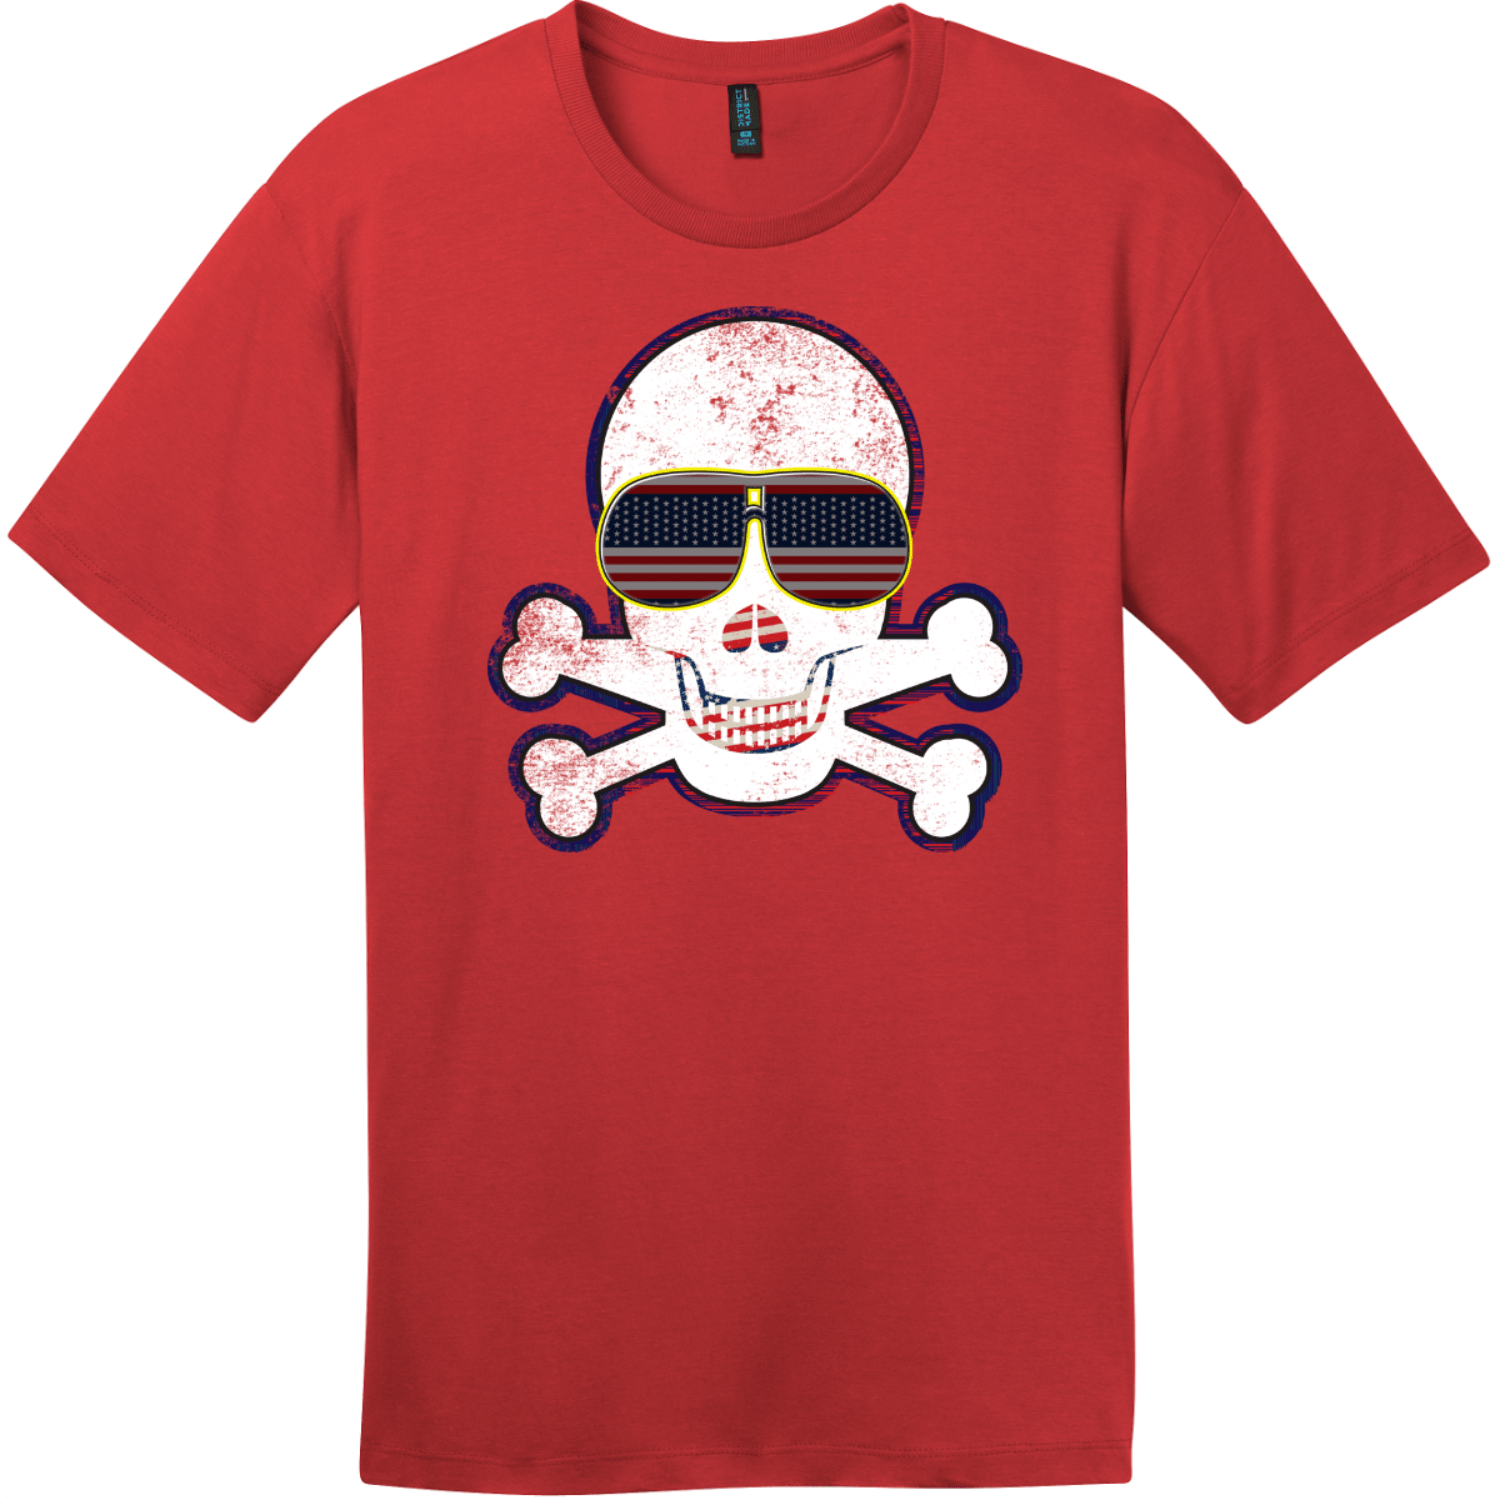 American Flag Sunglasses Retro Skull T-Shirt Classic Red District Perfect Weight Tee DT104